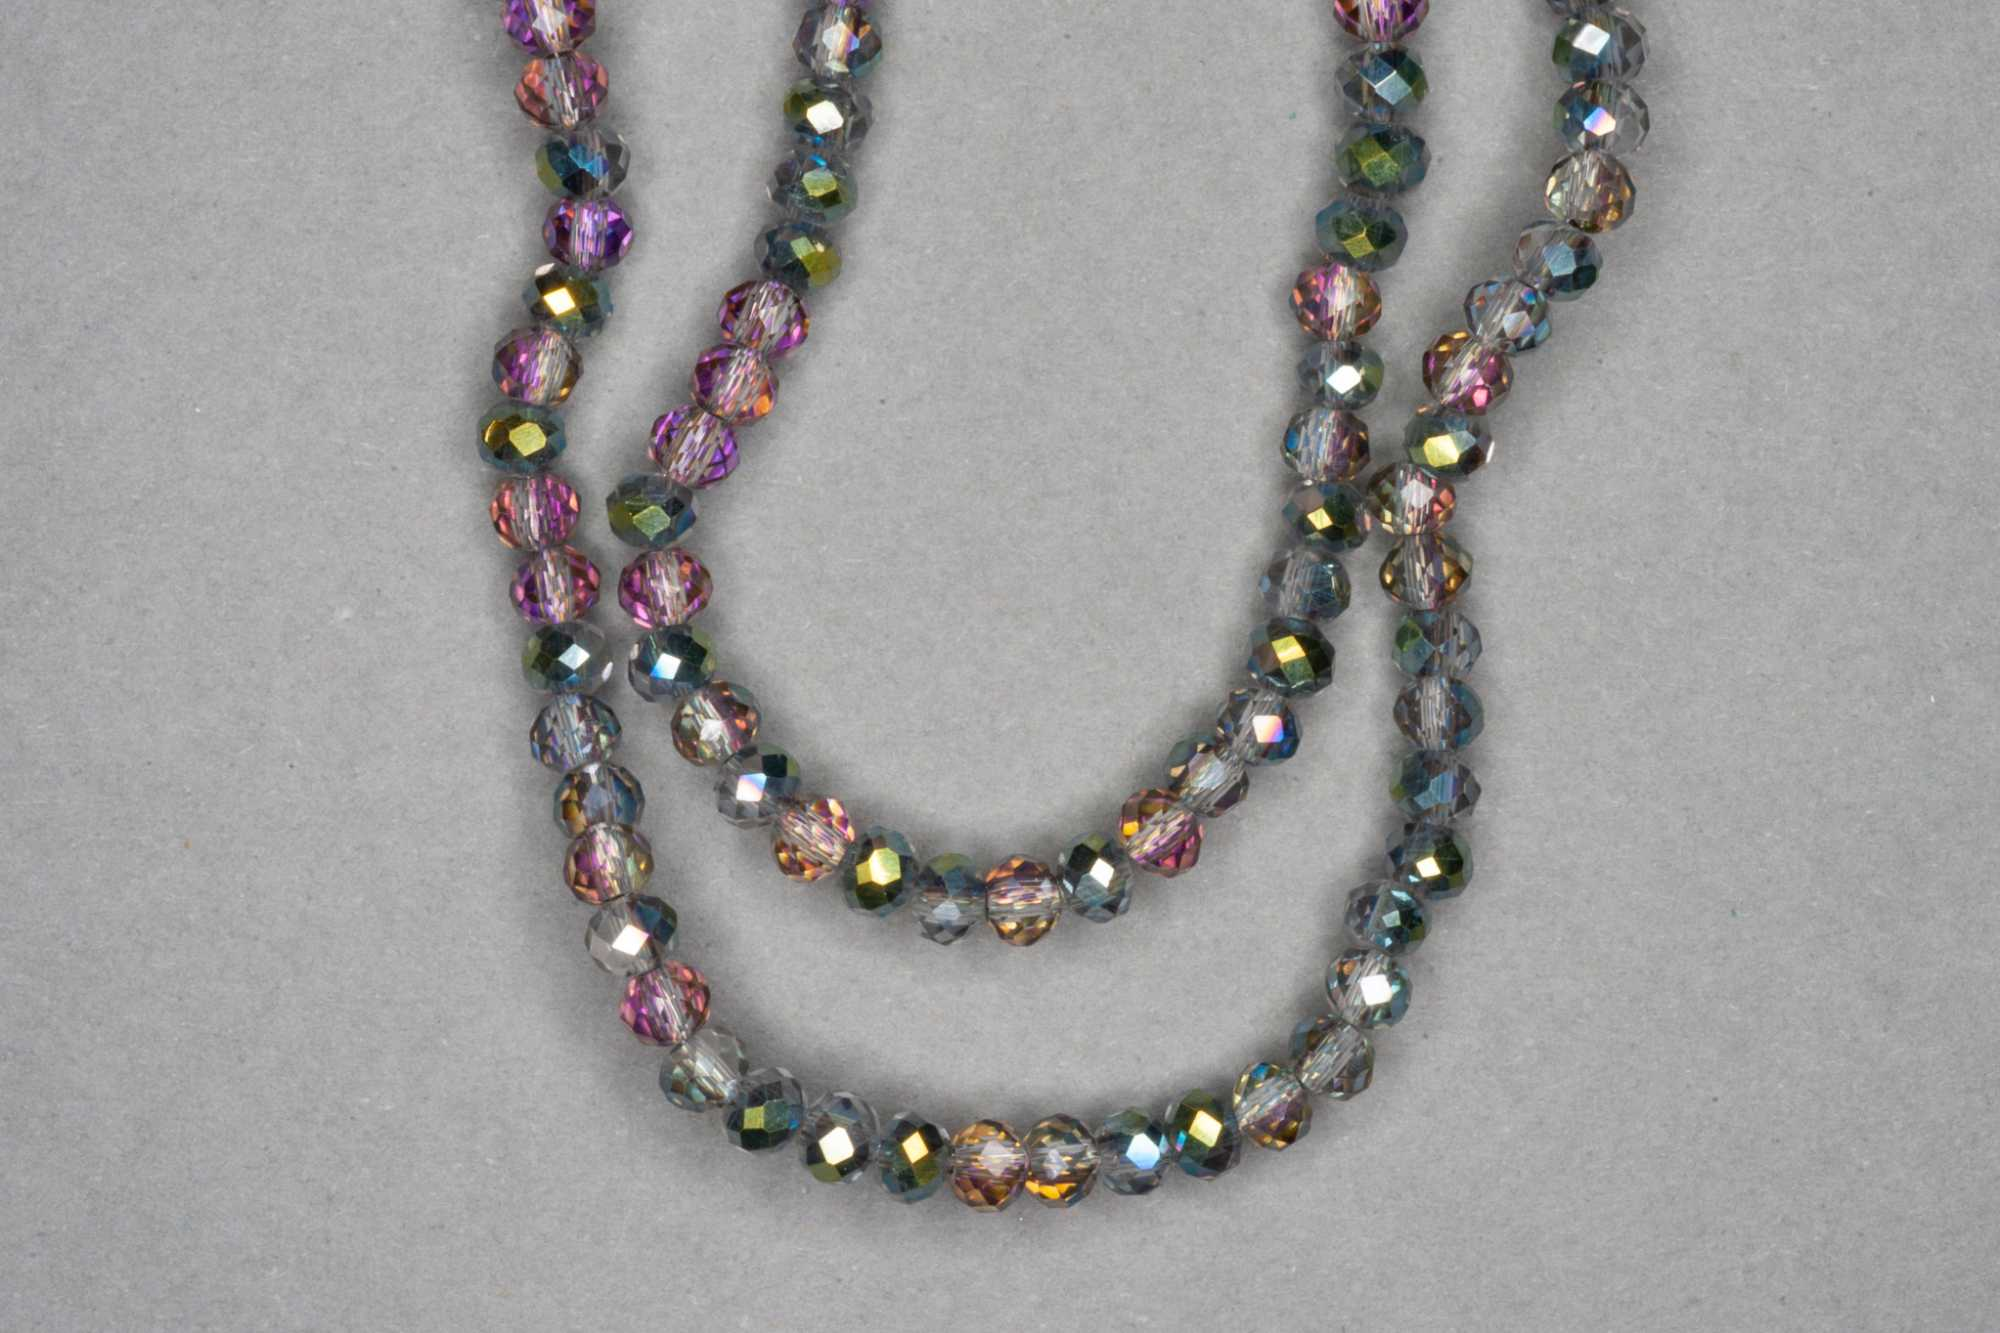 Peacock/Smokey Faceted Glass Beads